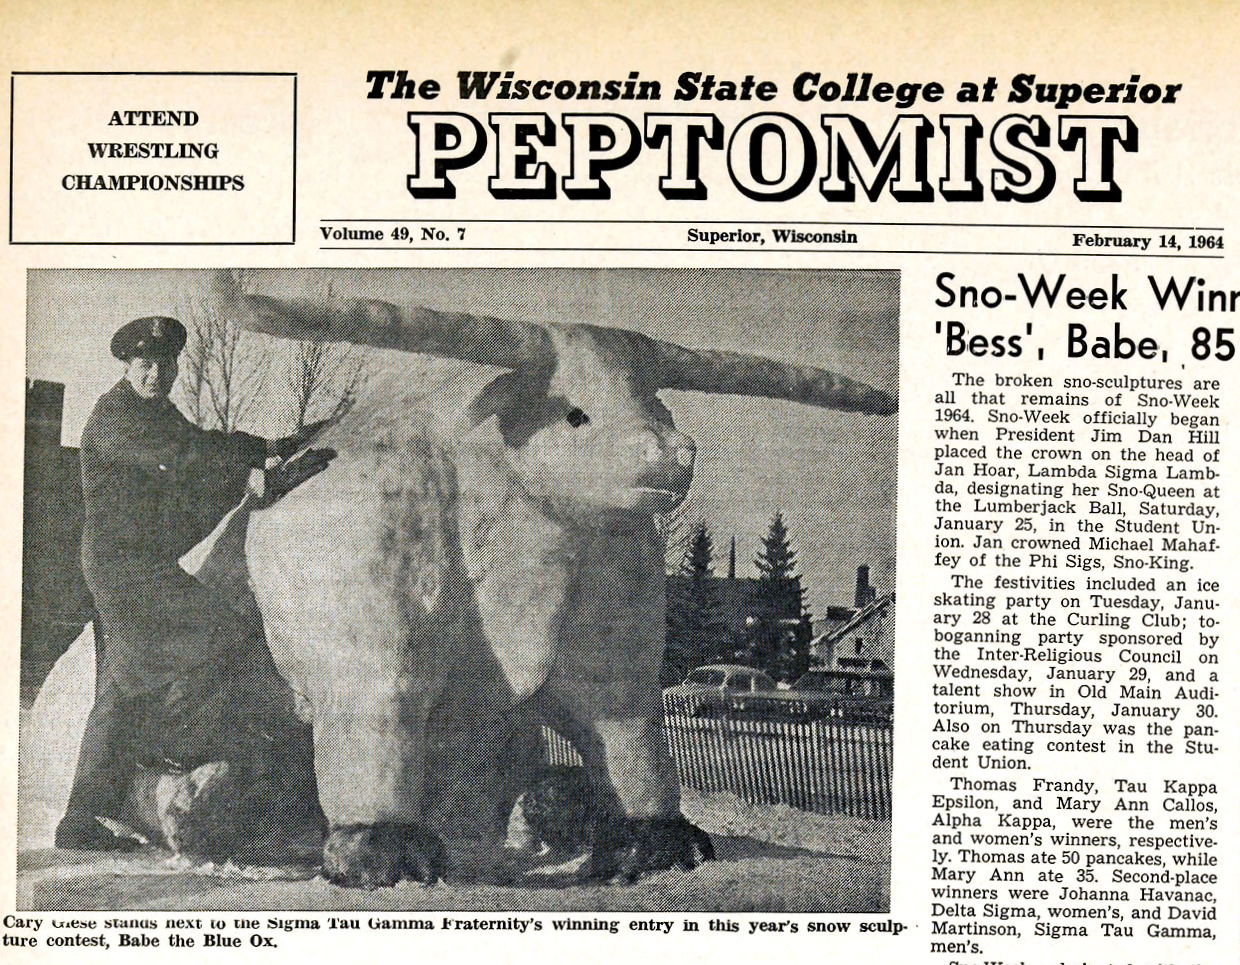 Cover of a student newspaper from 1964 showing a snow sculpture of an ox